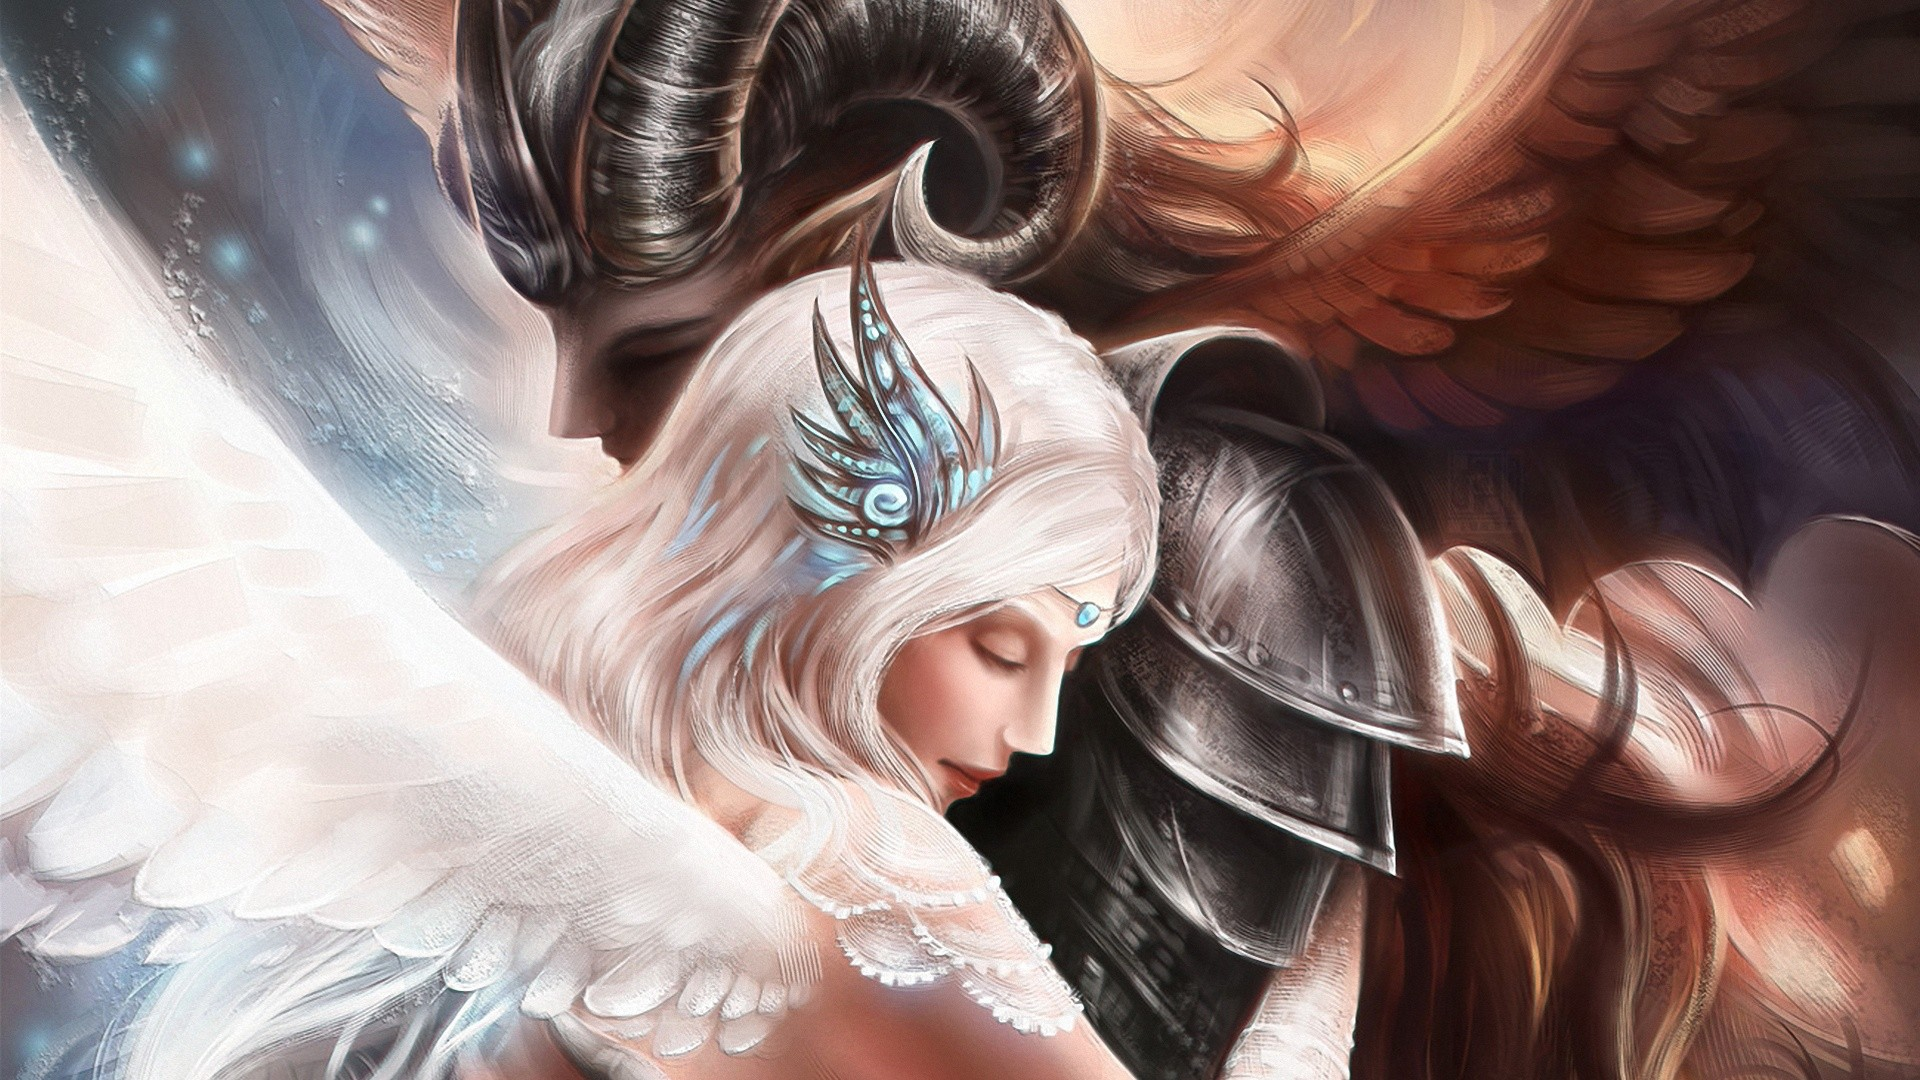 Angel And Demon Love Quotes: Angels And Demons Wallpapers